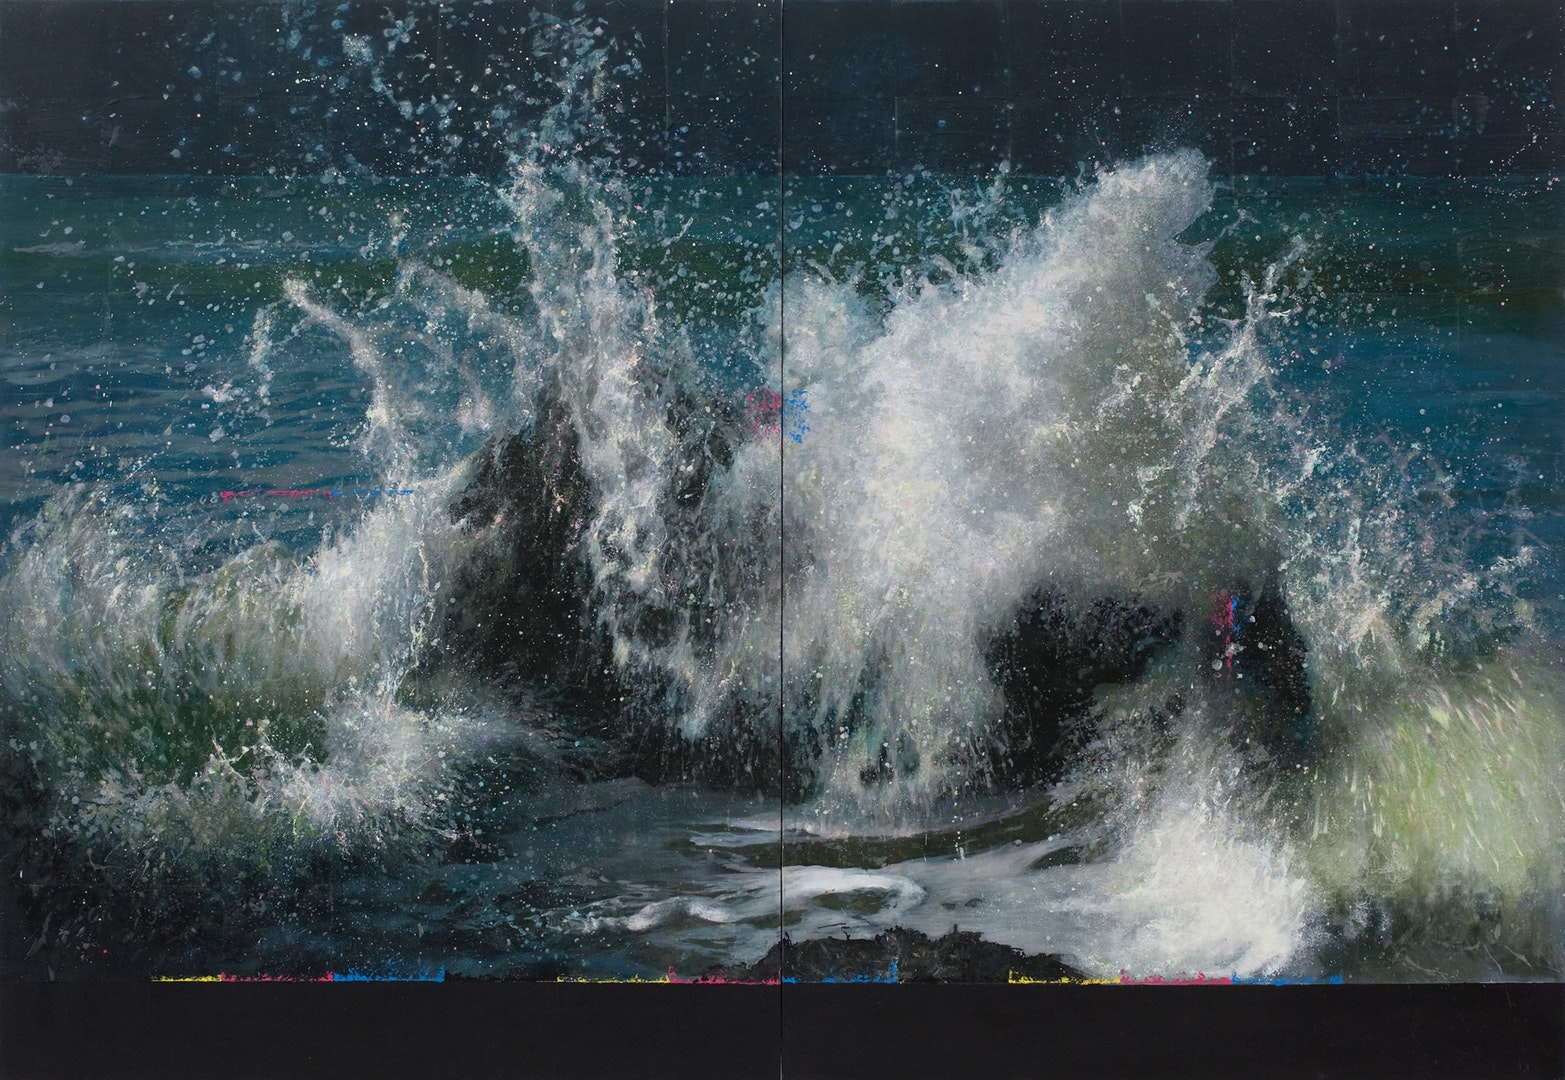 'Wave Breaking Over Rock (XXV)', Michael Corkrey, Oil on canvas, with a layer of microcrystalline wax, 137 x 200 x 6 cm